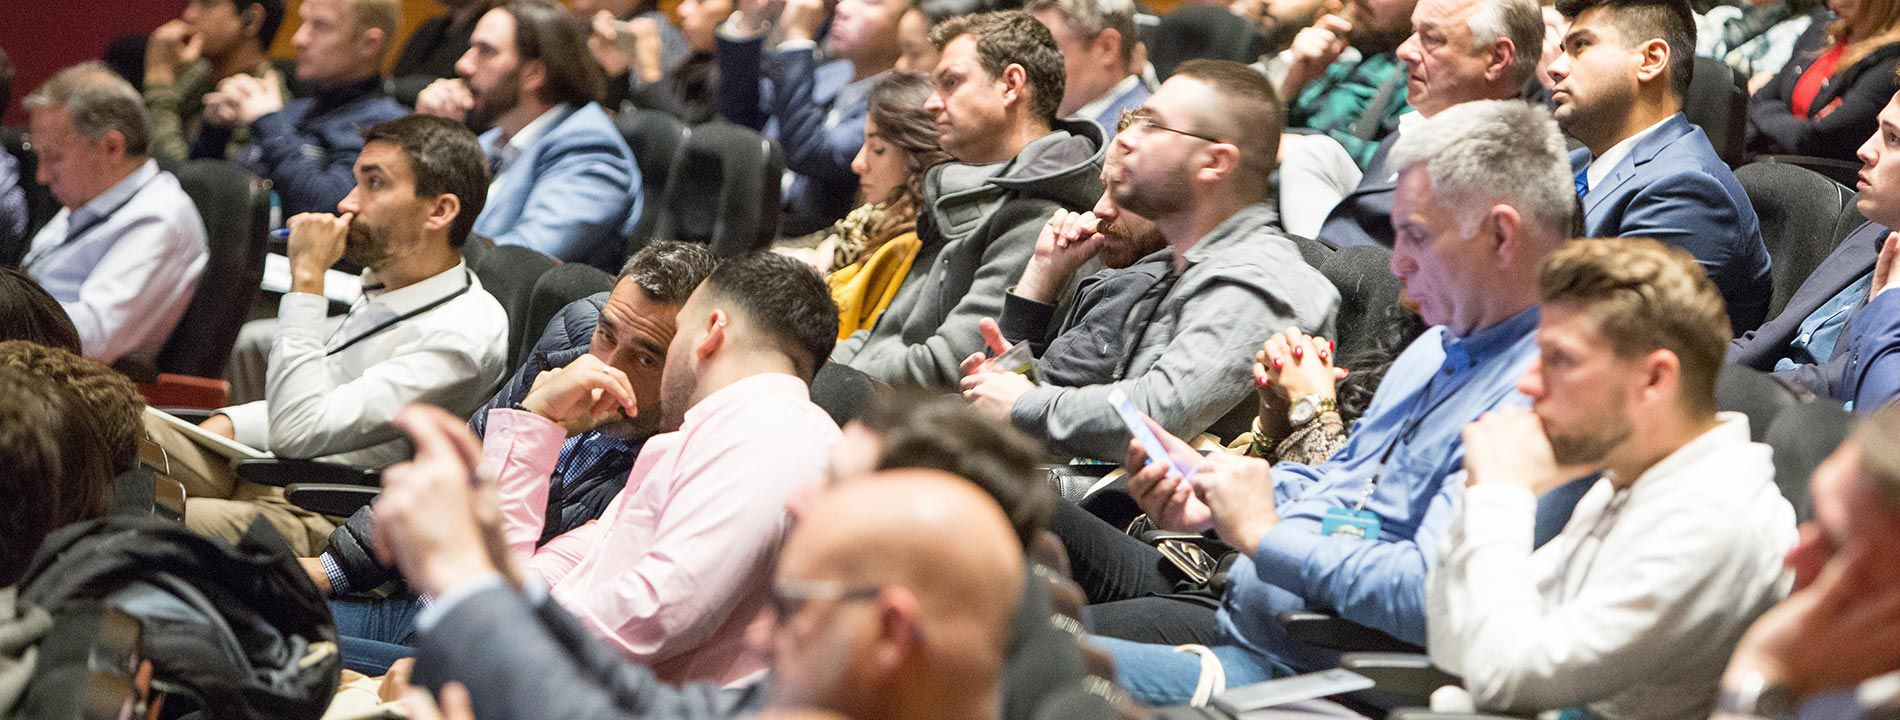 San Francisco International Cannabis Business Conference audience